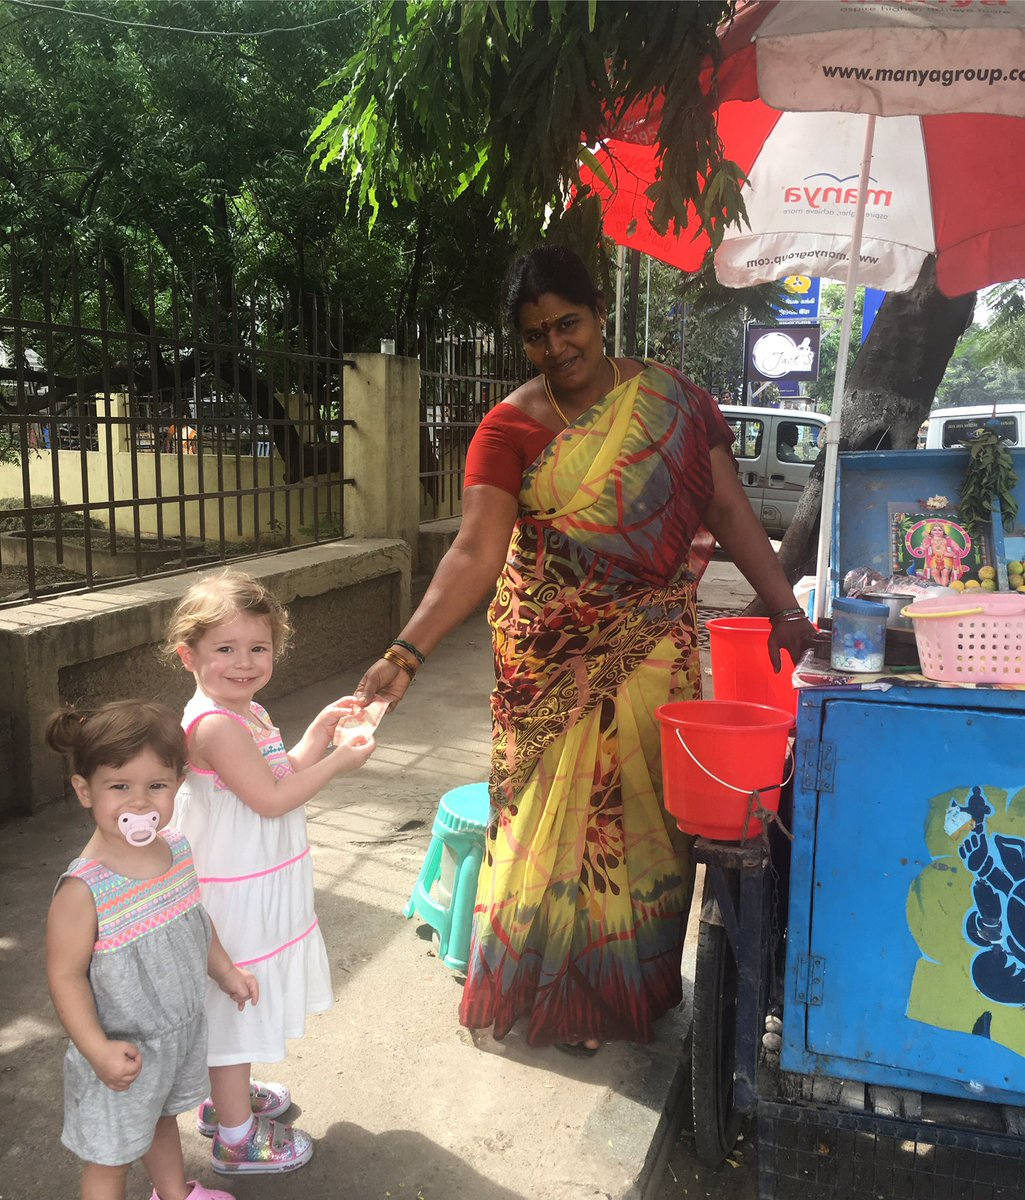 Ivy and Indi out and about in downtown Chennai today. #India #secondhome https://t.co/L6CRG1KrUb